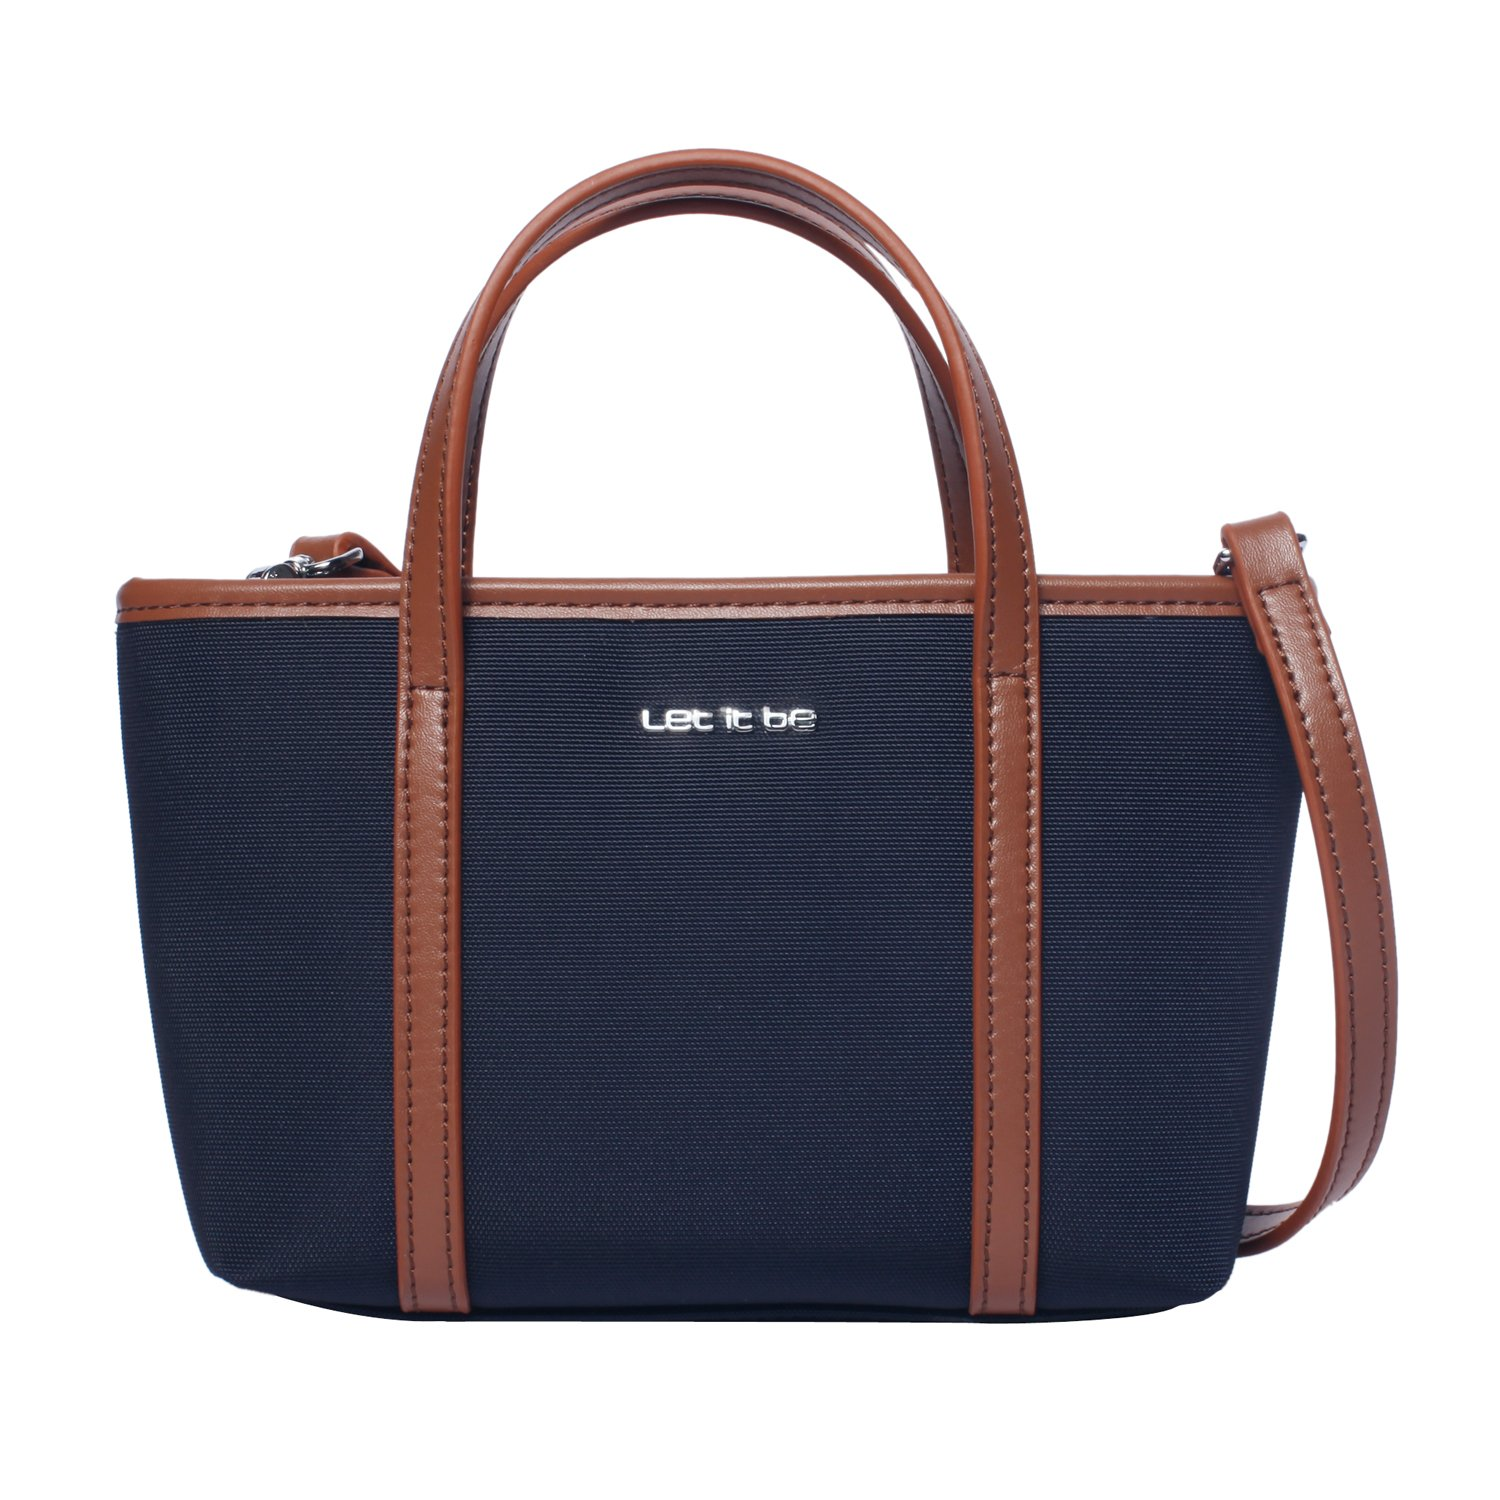 Let It Be Cute Mini Tote Shoulder Bag For Women